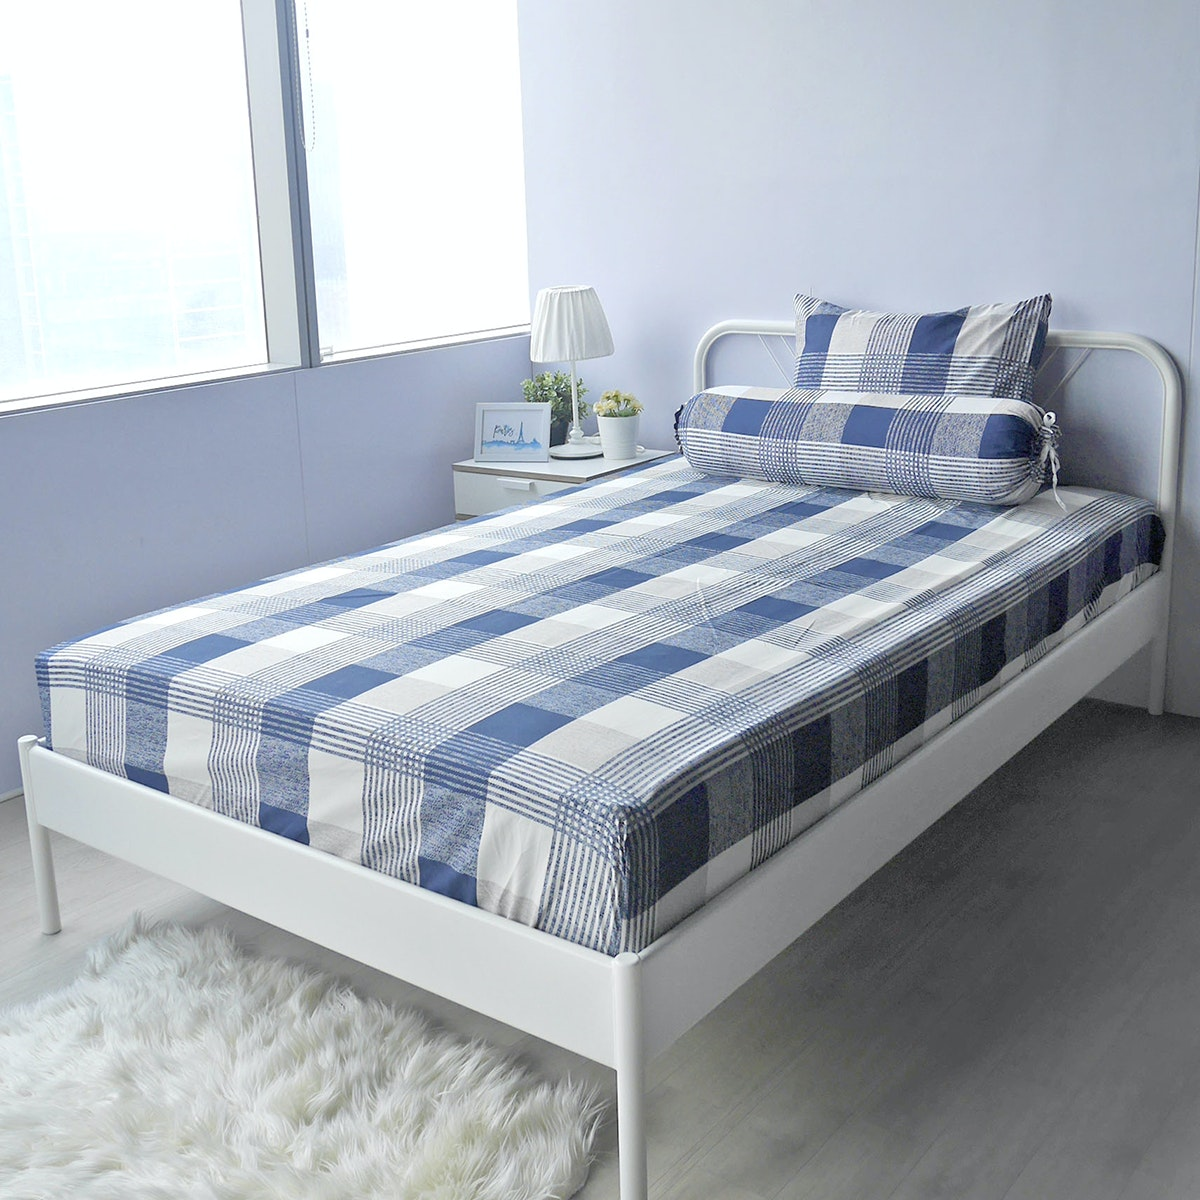 Pillow People Set Sprei Square Navy 200x200cm